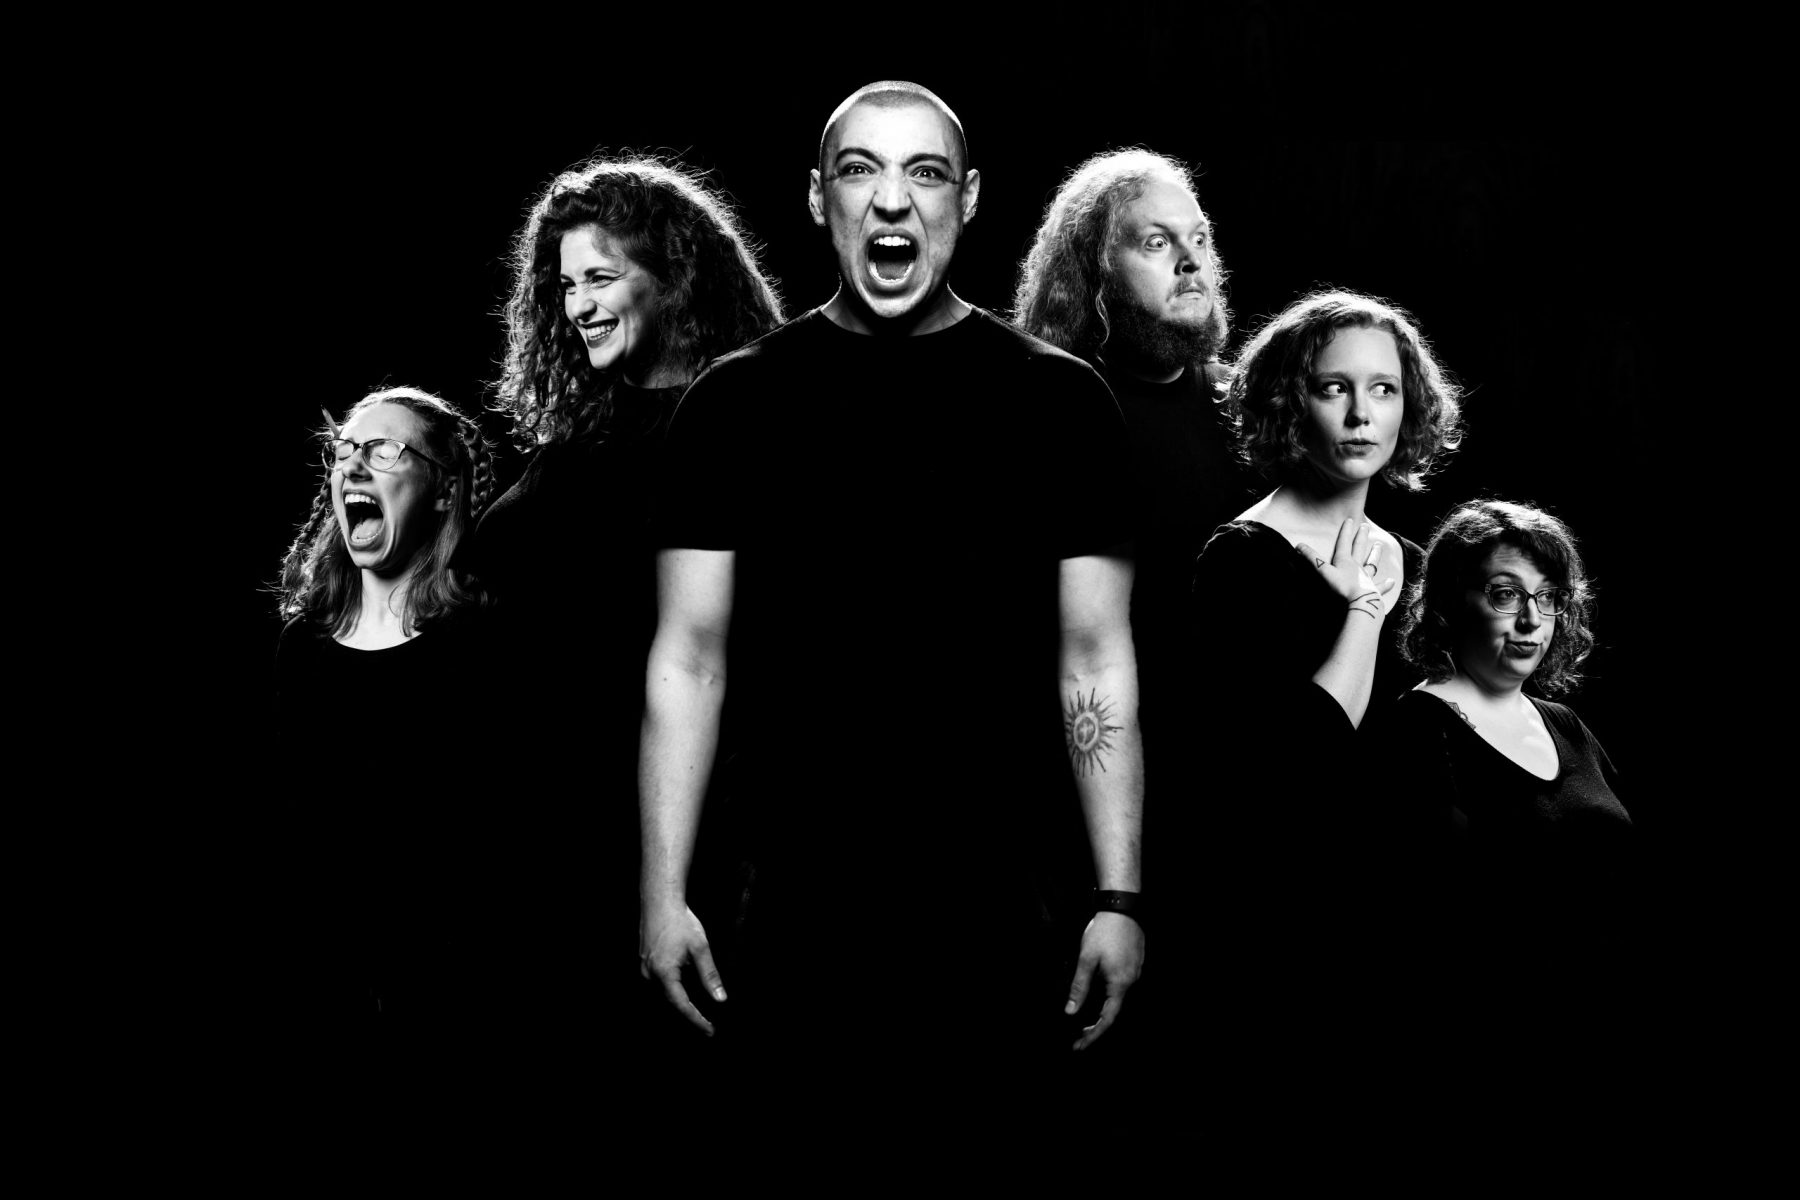 Six people making exaggerated facial expressions, in black and white.